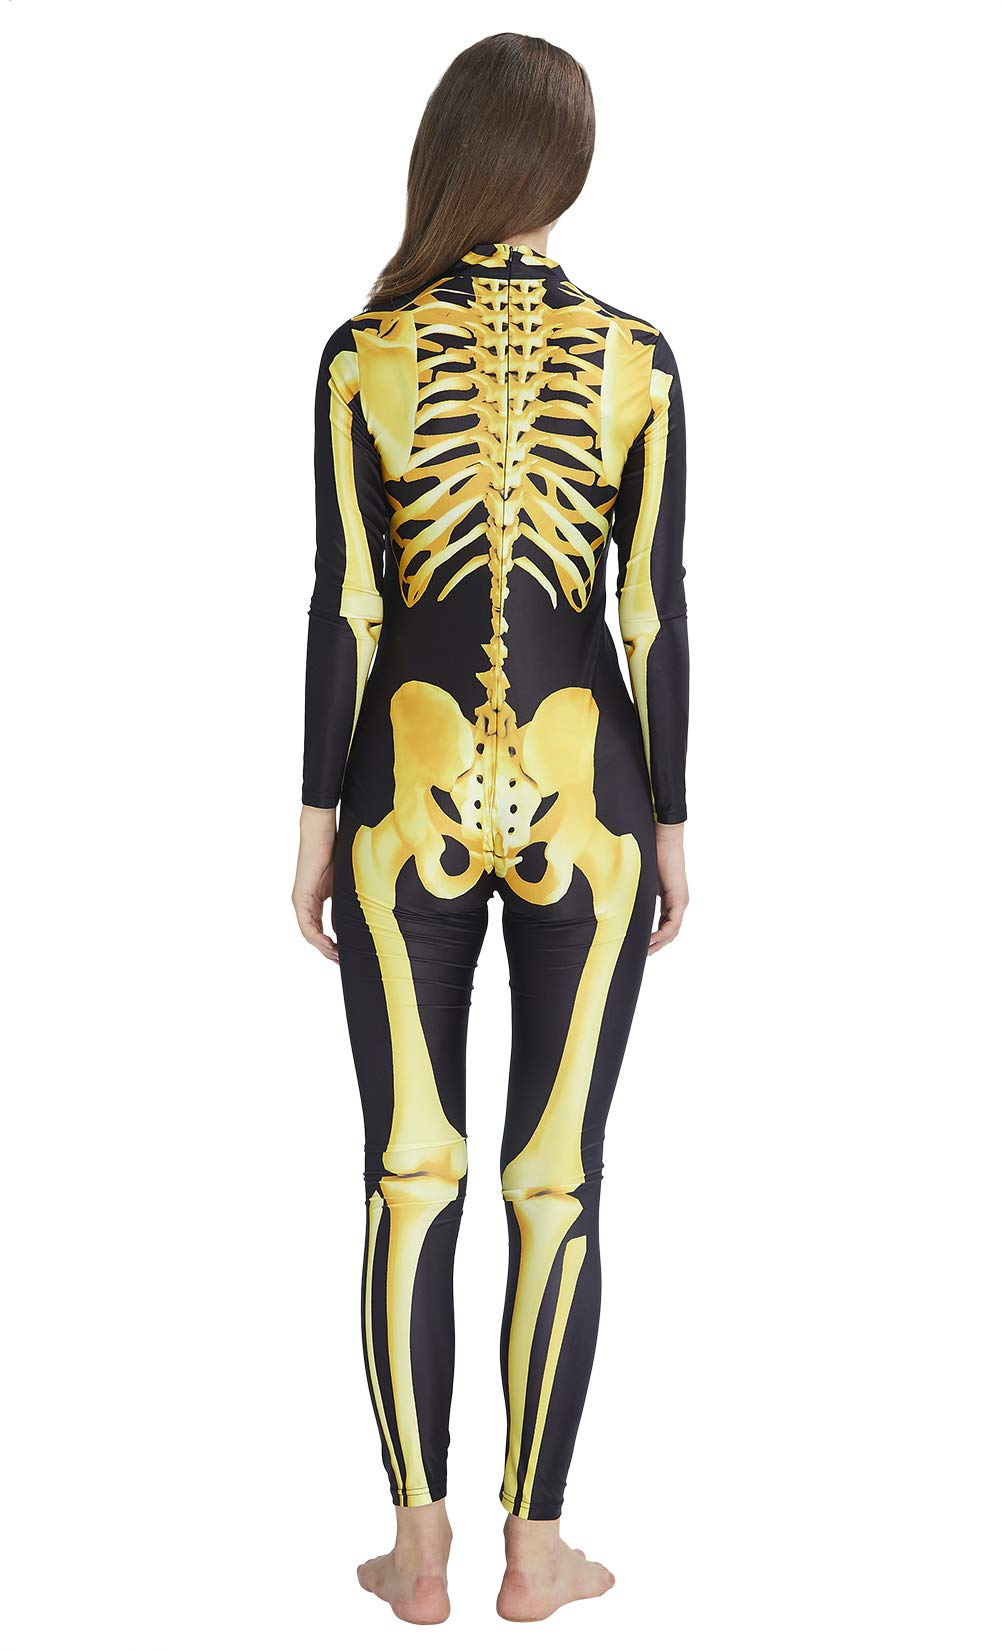 RAISEVERN Women\'s Halloween Jumpsuit Print 3D Digital Zombie Print Skeleton Bodysuit Slim Fit Gold Yellow Skull Costume Unique Tights Skin Suit Catsuit Jumpsuit for Holiday Night Party